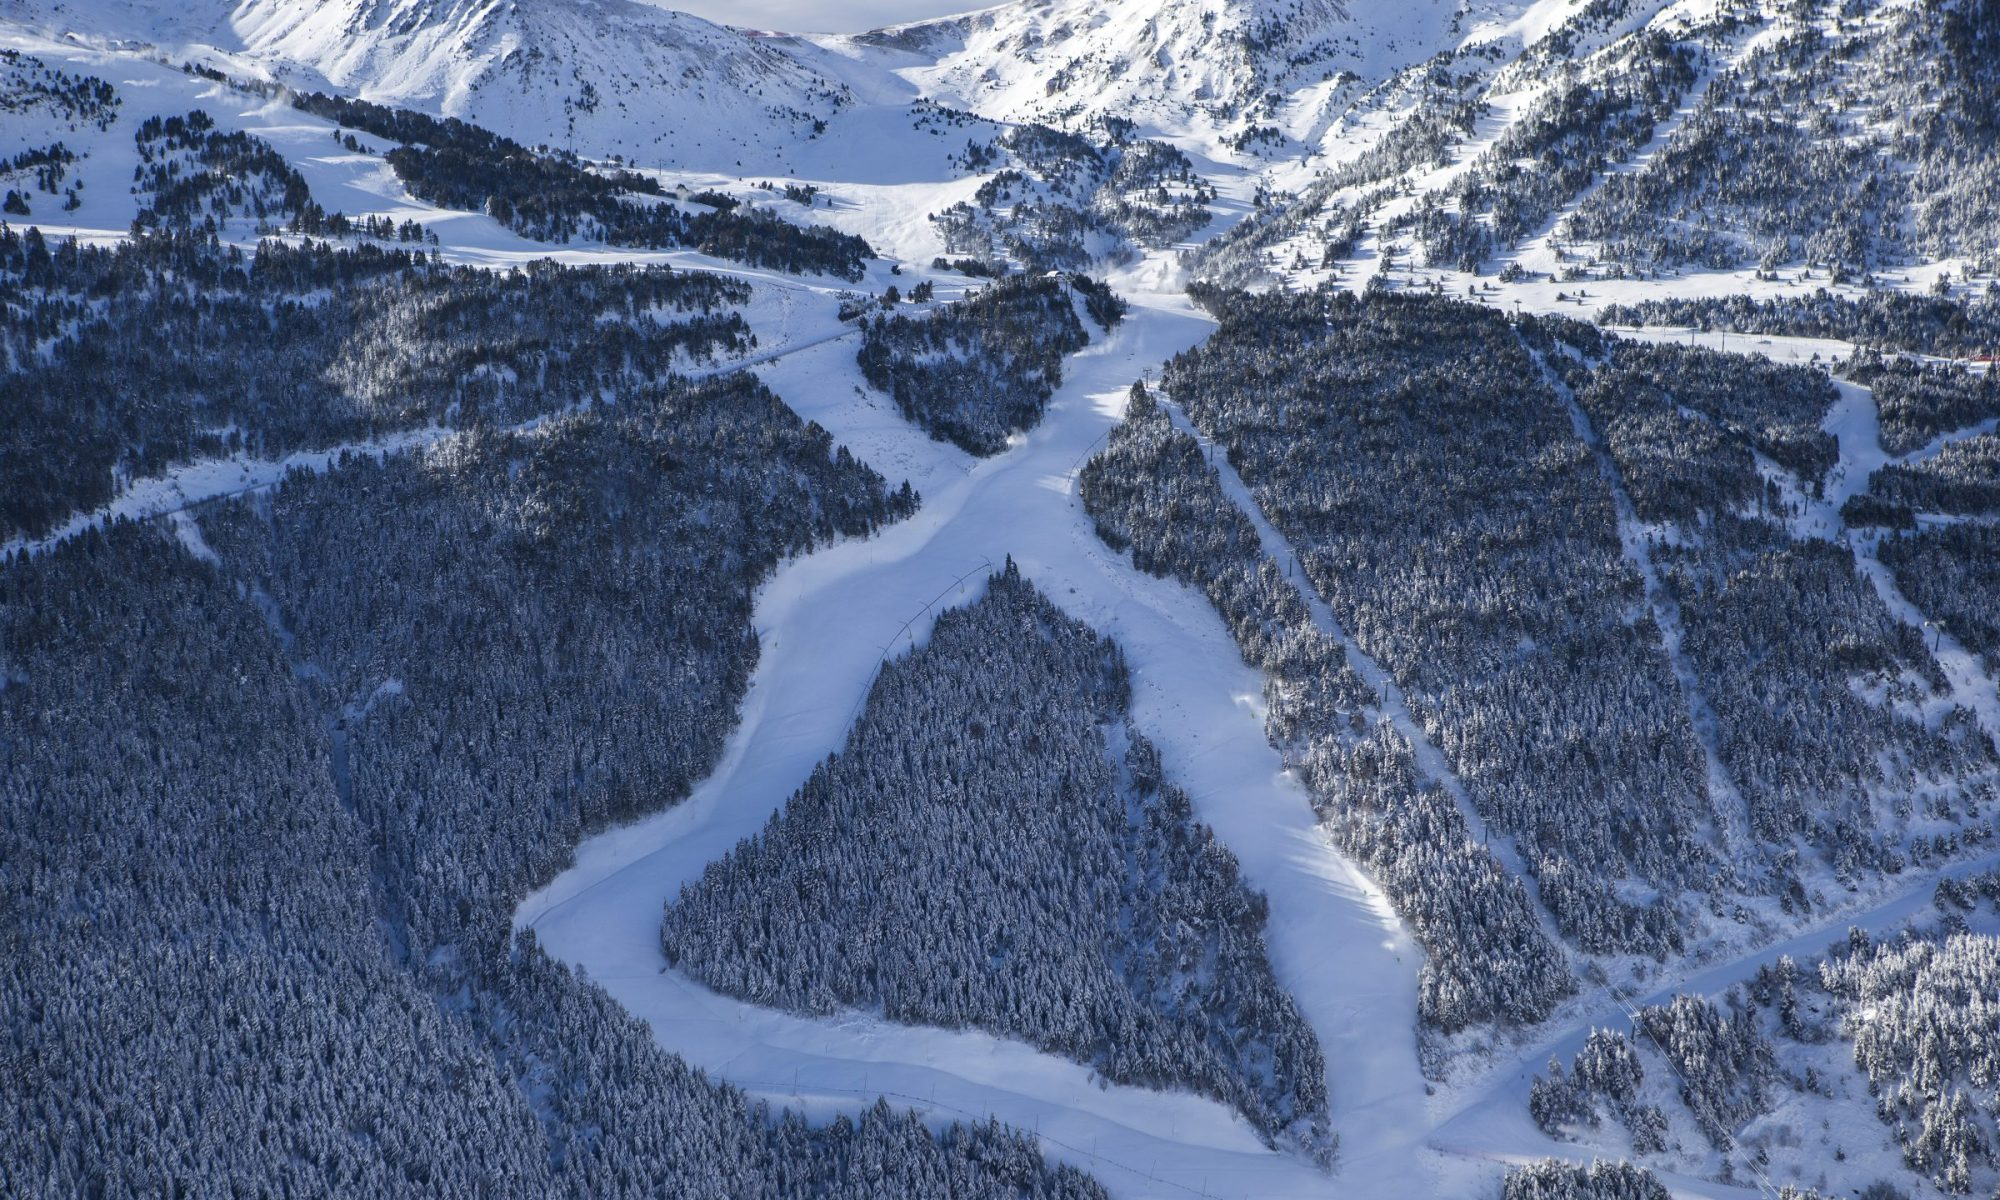 Grandvalira is the largest resort under one lift ticket in Andorra. Photo courtesy Grandvalira.